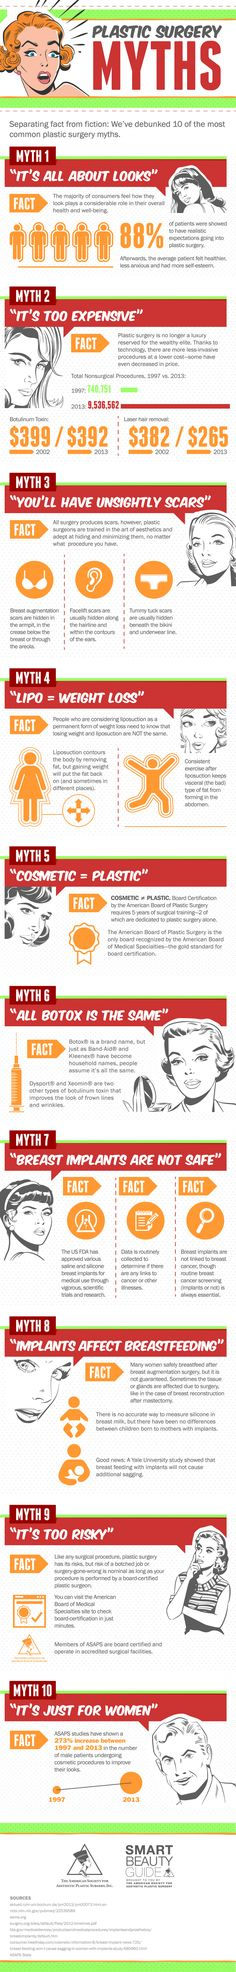 Top 10 plastic surgery myths: Fact vs. fiction [INFOGRAPHIC]